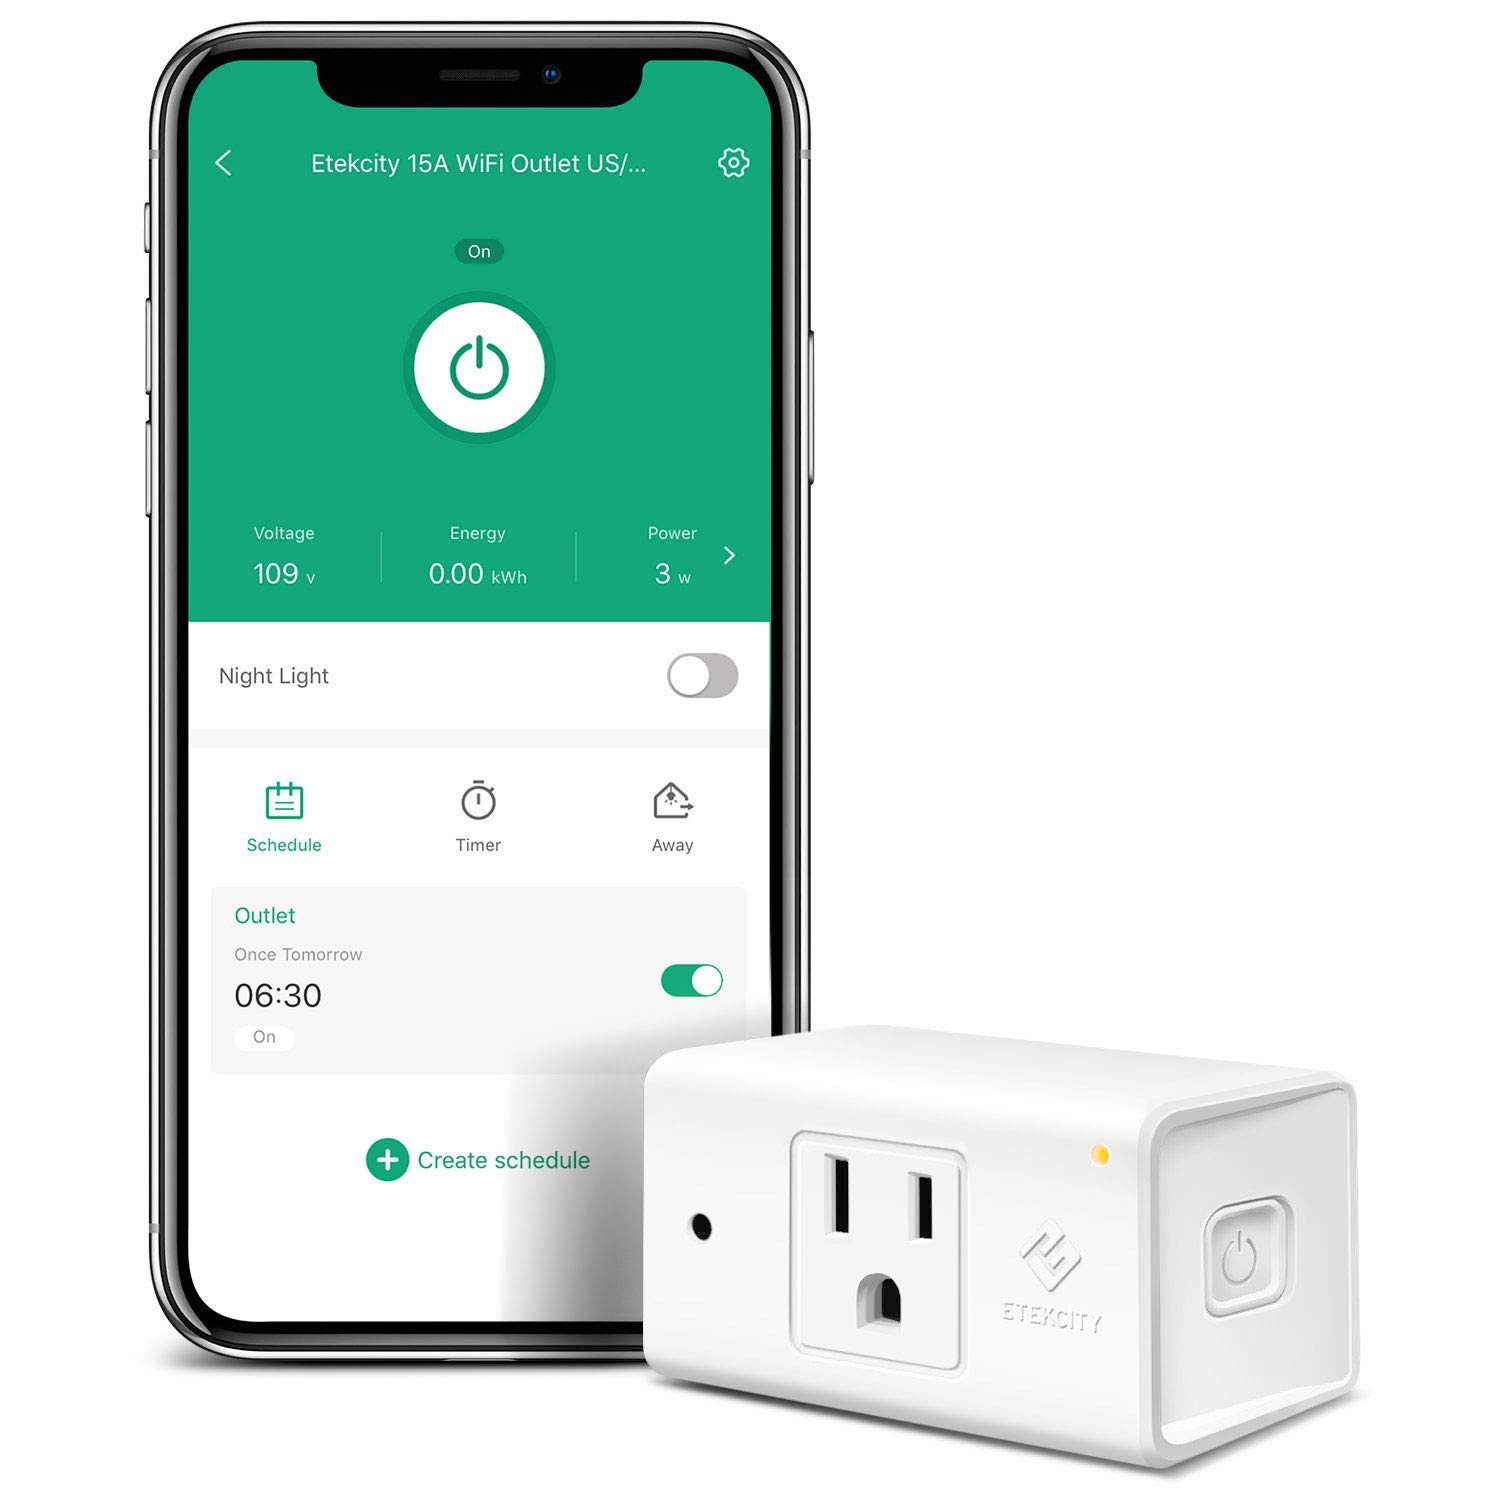 Etekcity WiFi Smart Plug Mini Outlet with [Automatic Night Light], Schedule with Energy Monitoring, No Hub Required, Works with Alexa and Google Home, ETL Listed, White, 15A/1800W